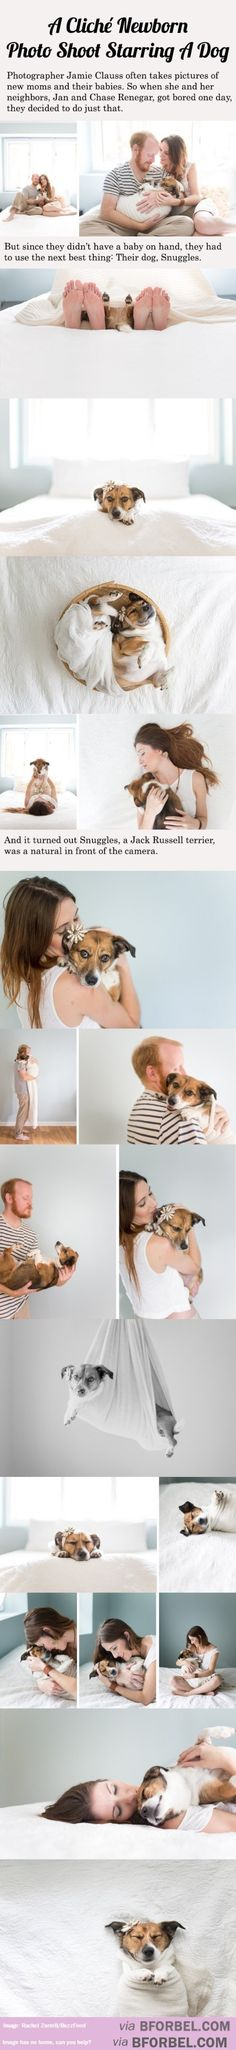 Are you a dog person? These '20 cliche new born photos starring a dog' have got us going! #newdog #adorable